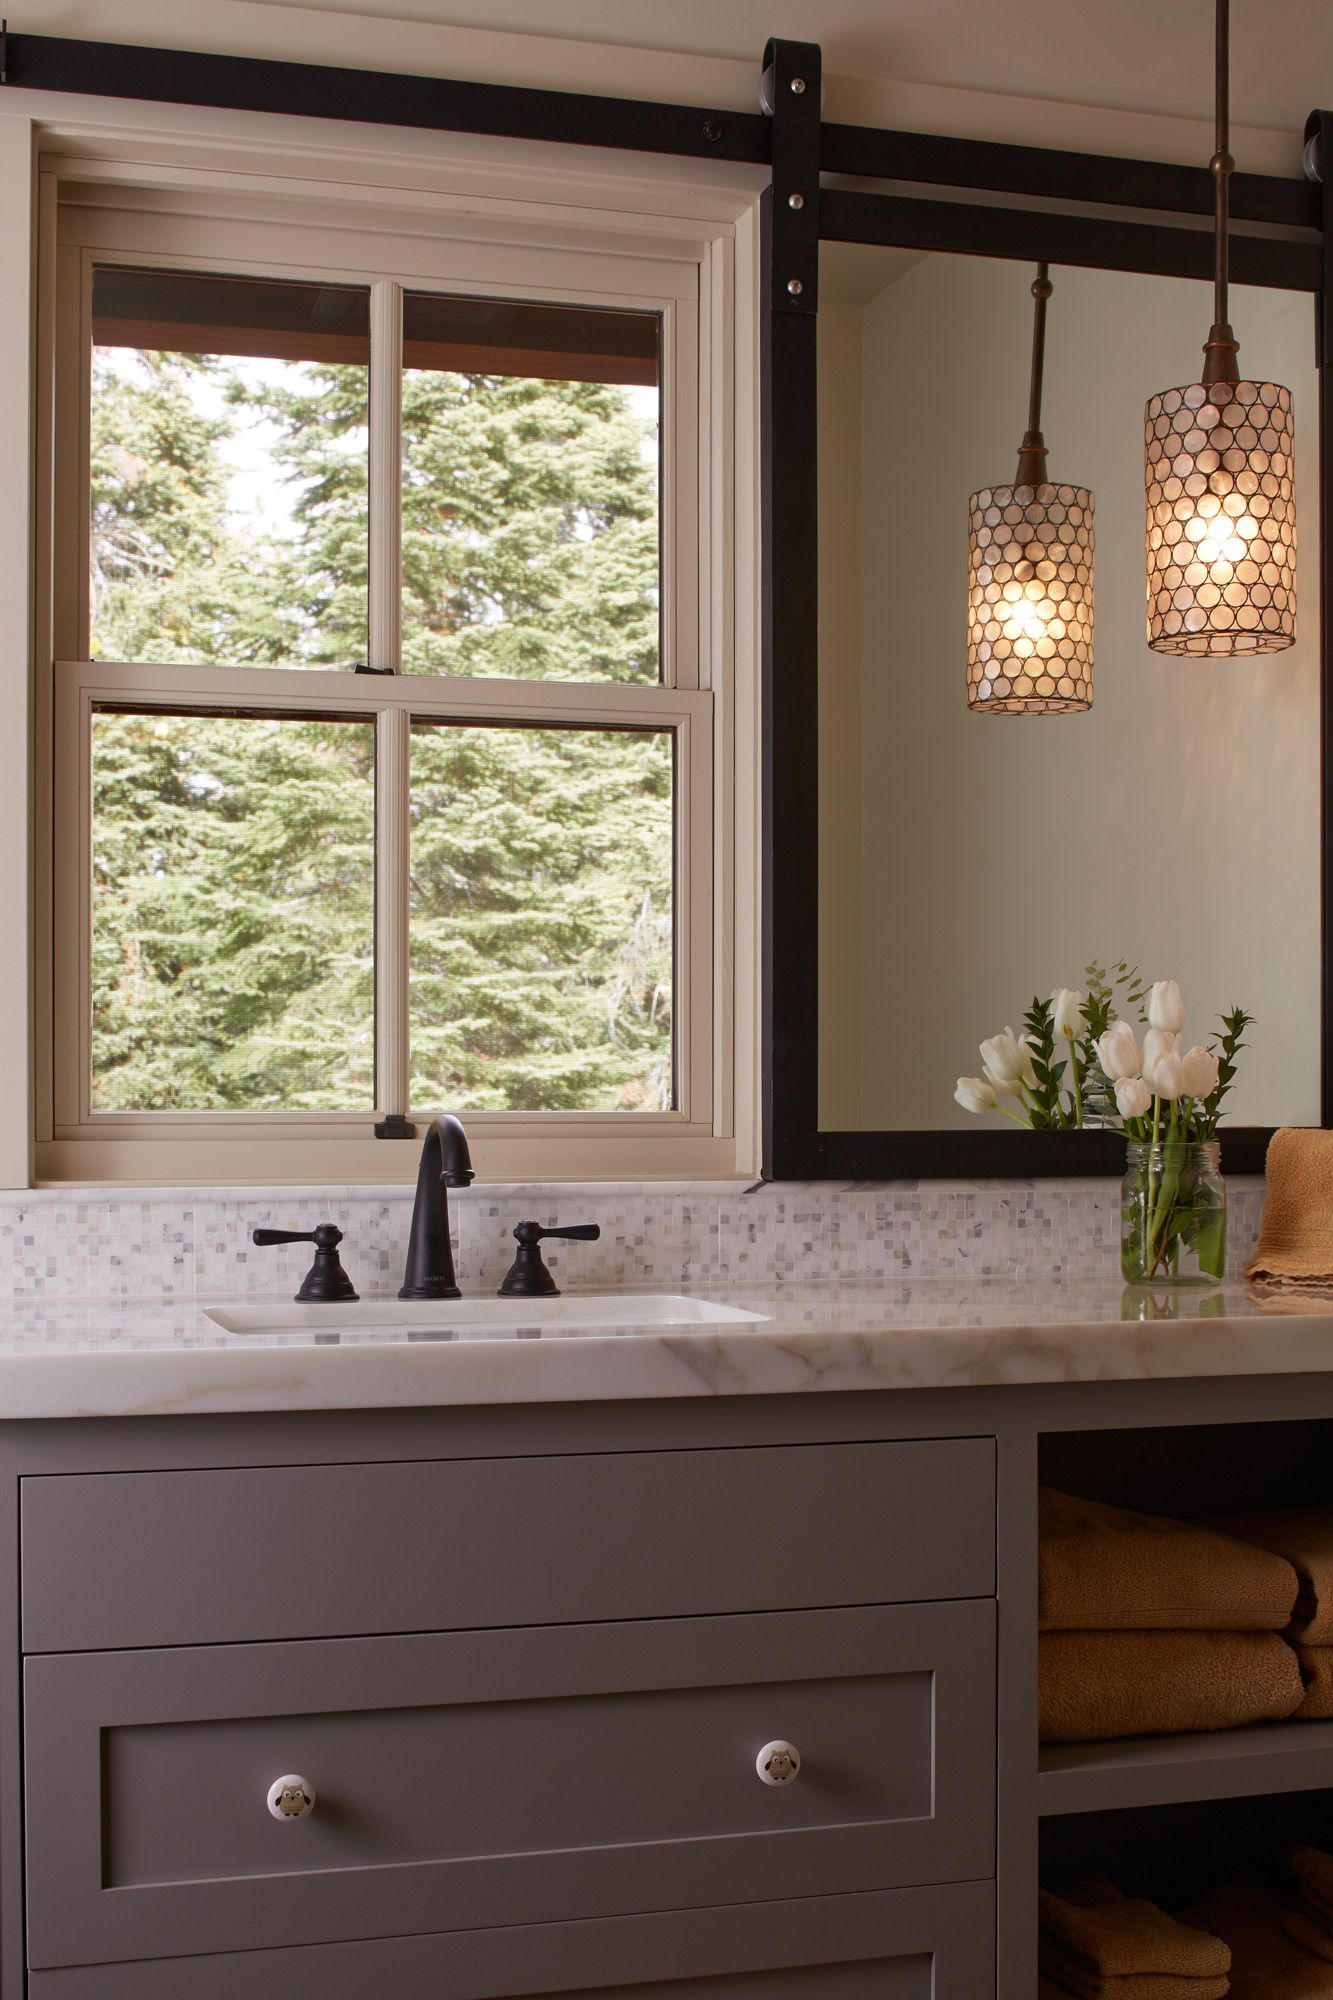 Clever mirror solution for window over vanity. Sliding track for ...